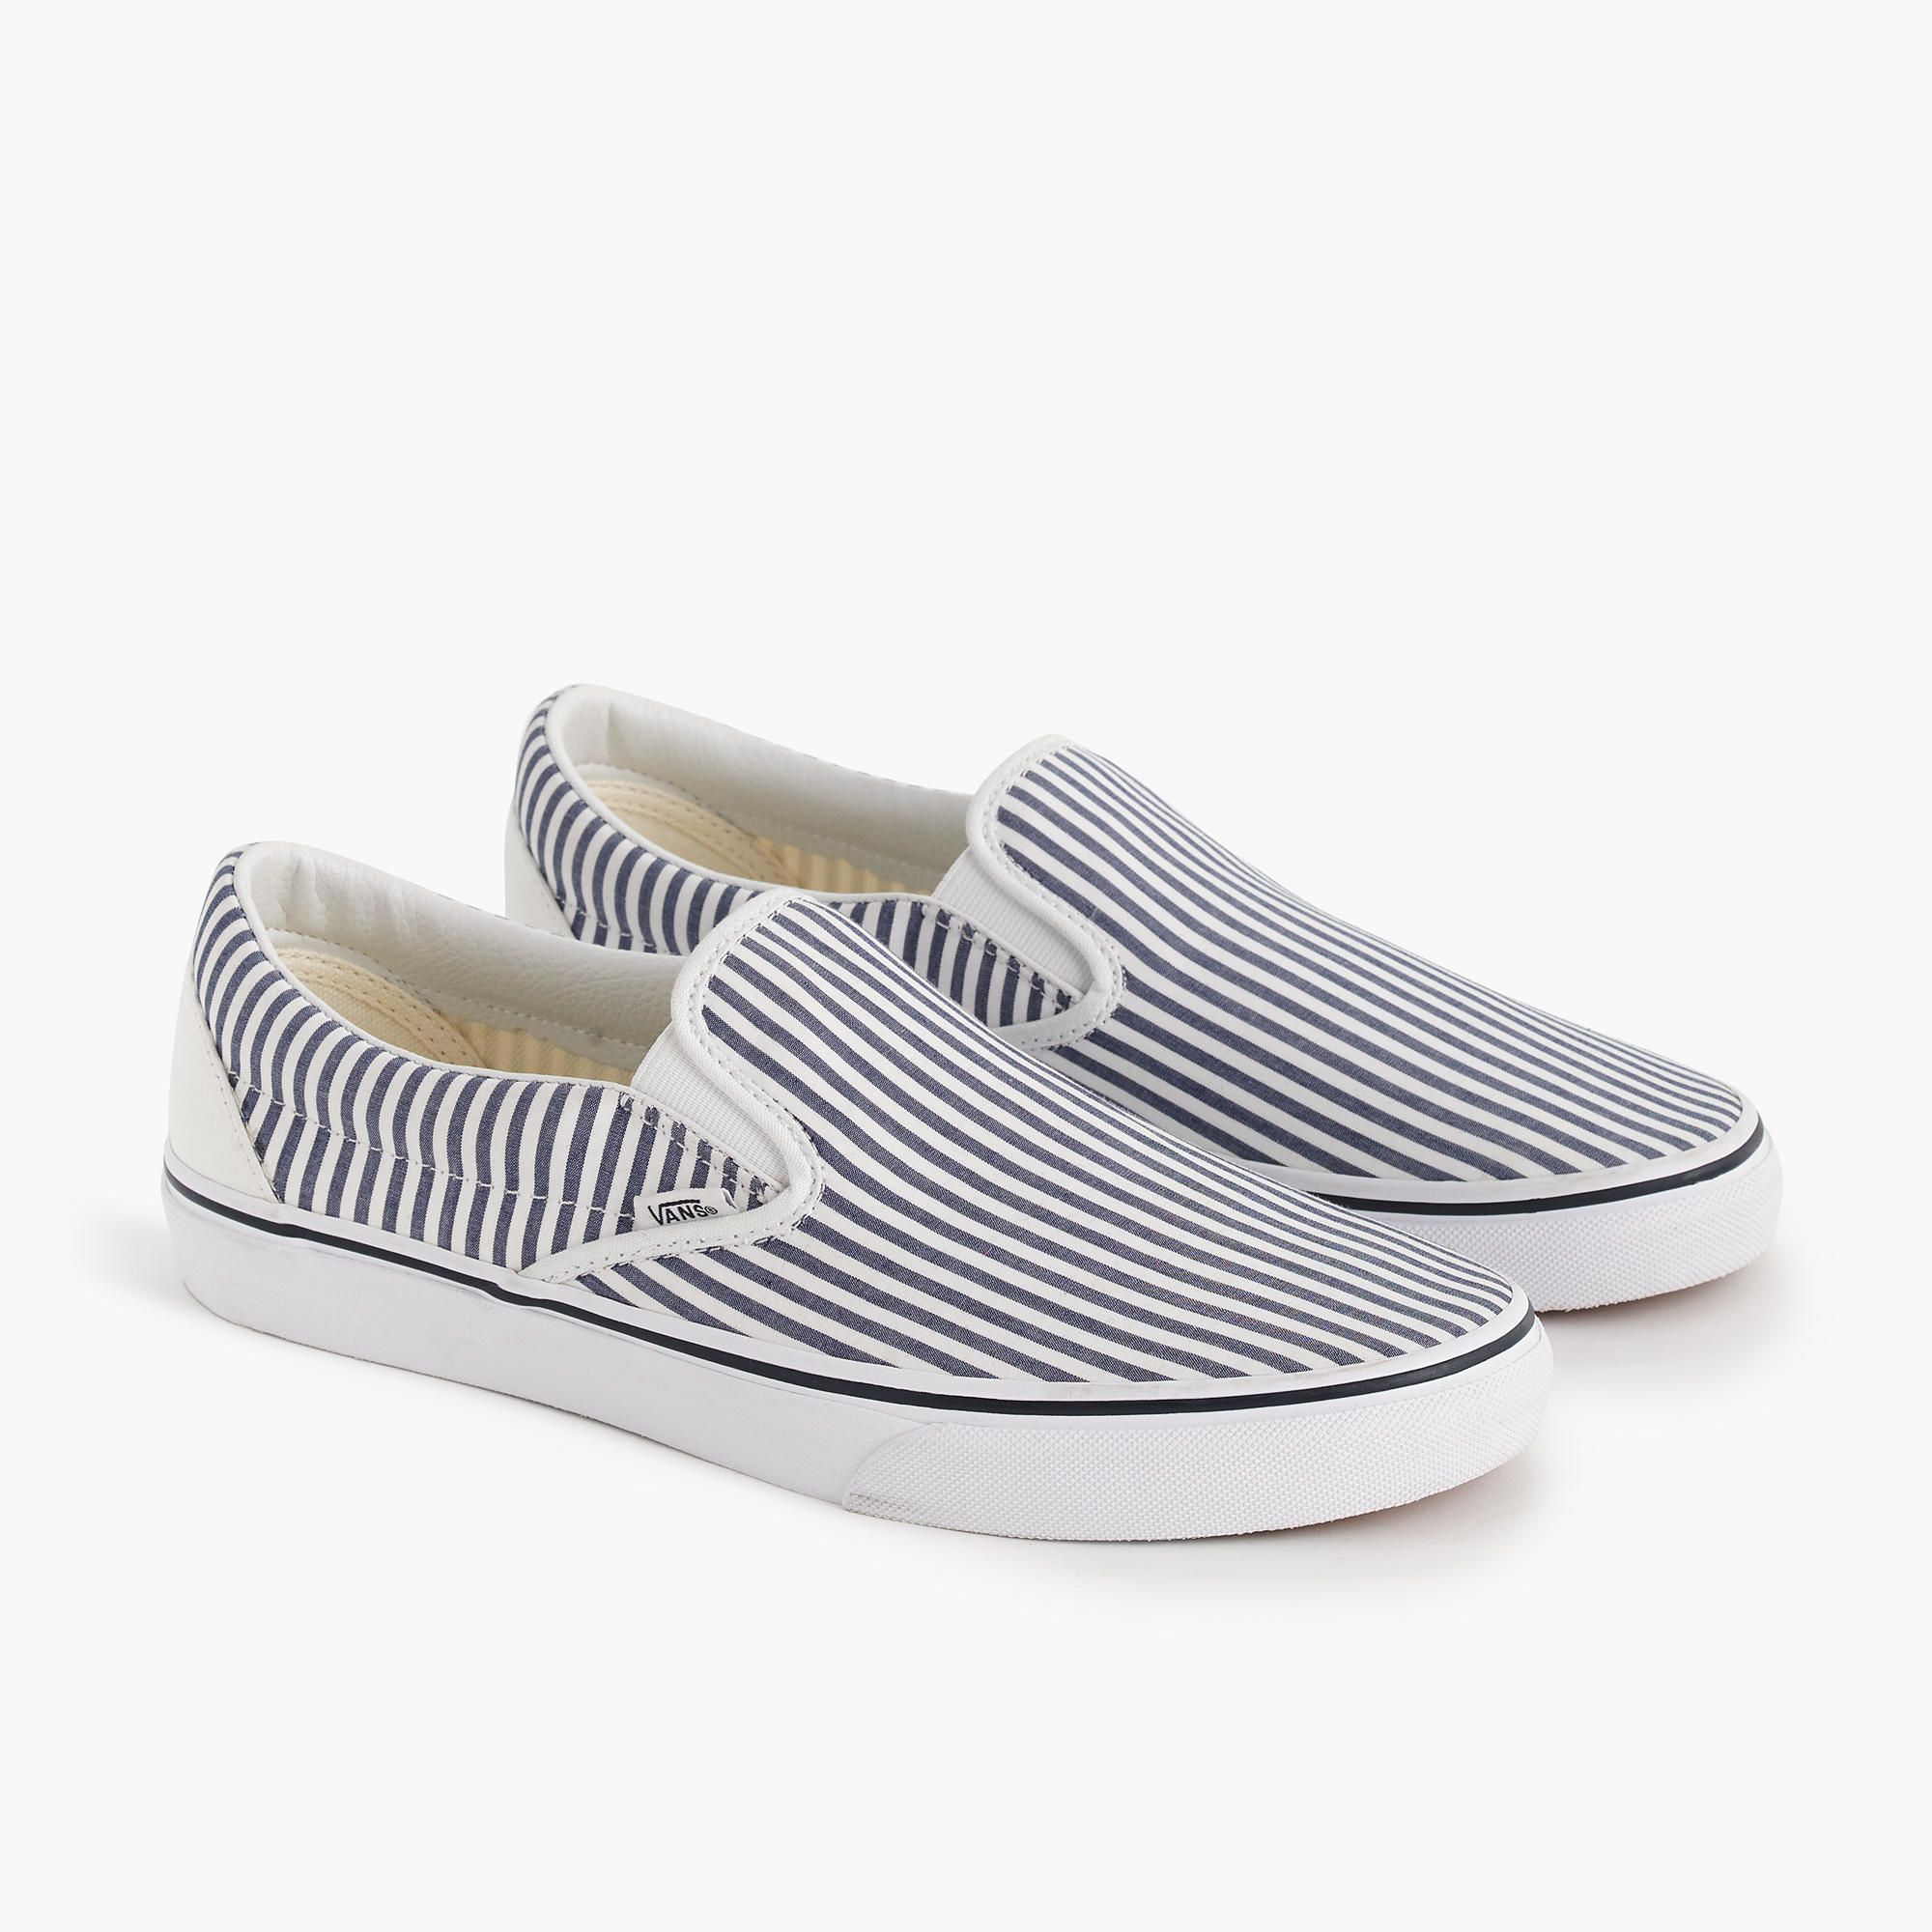 a91a572ca427b7 Vans® for J.Crew slip-on sneakers in seersucker stripe